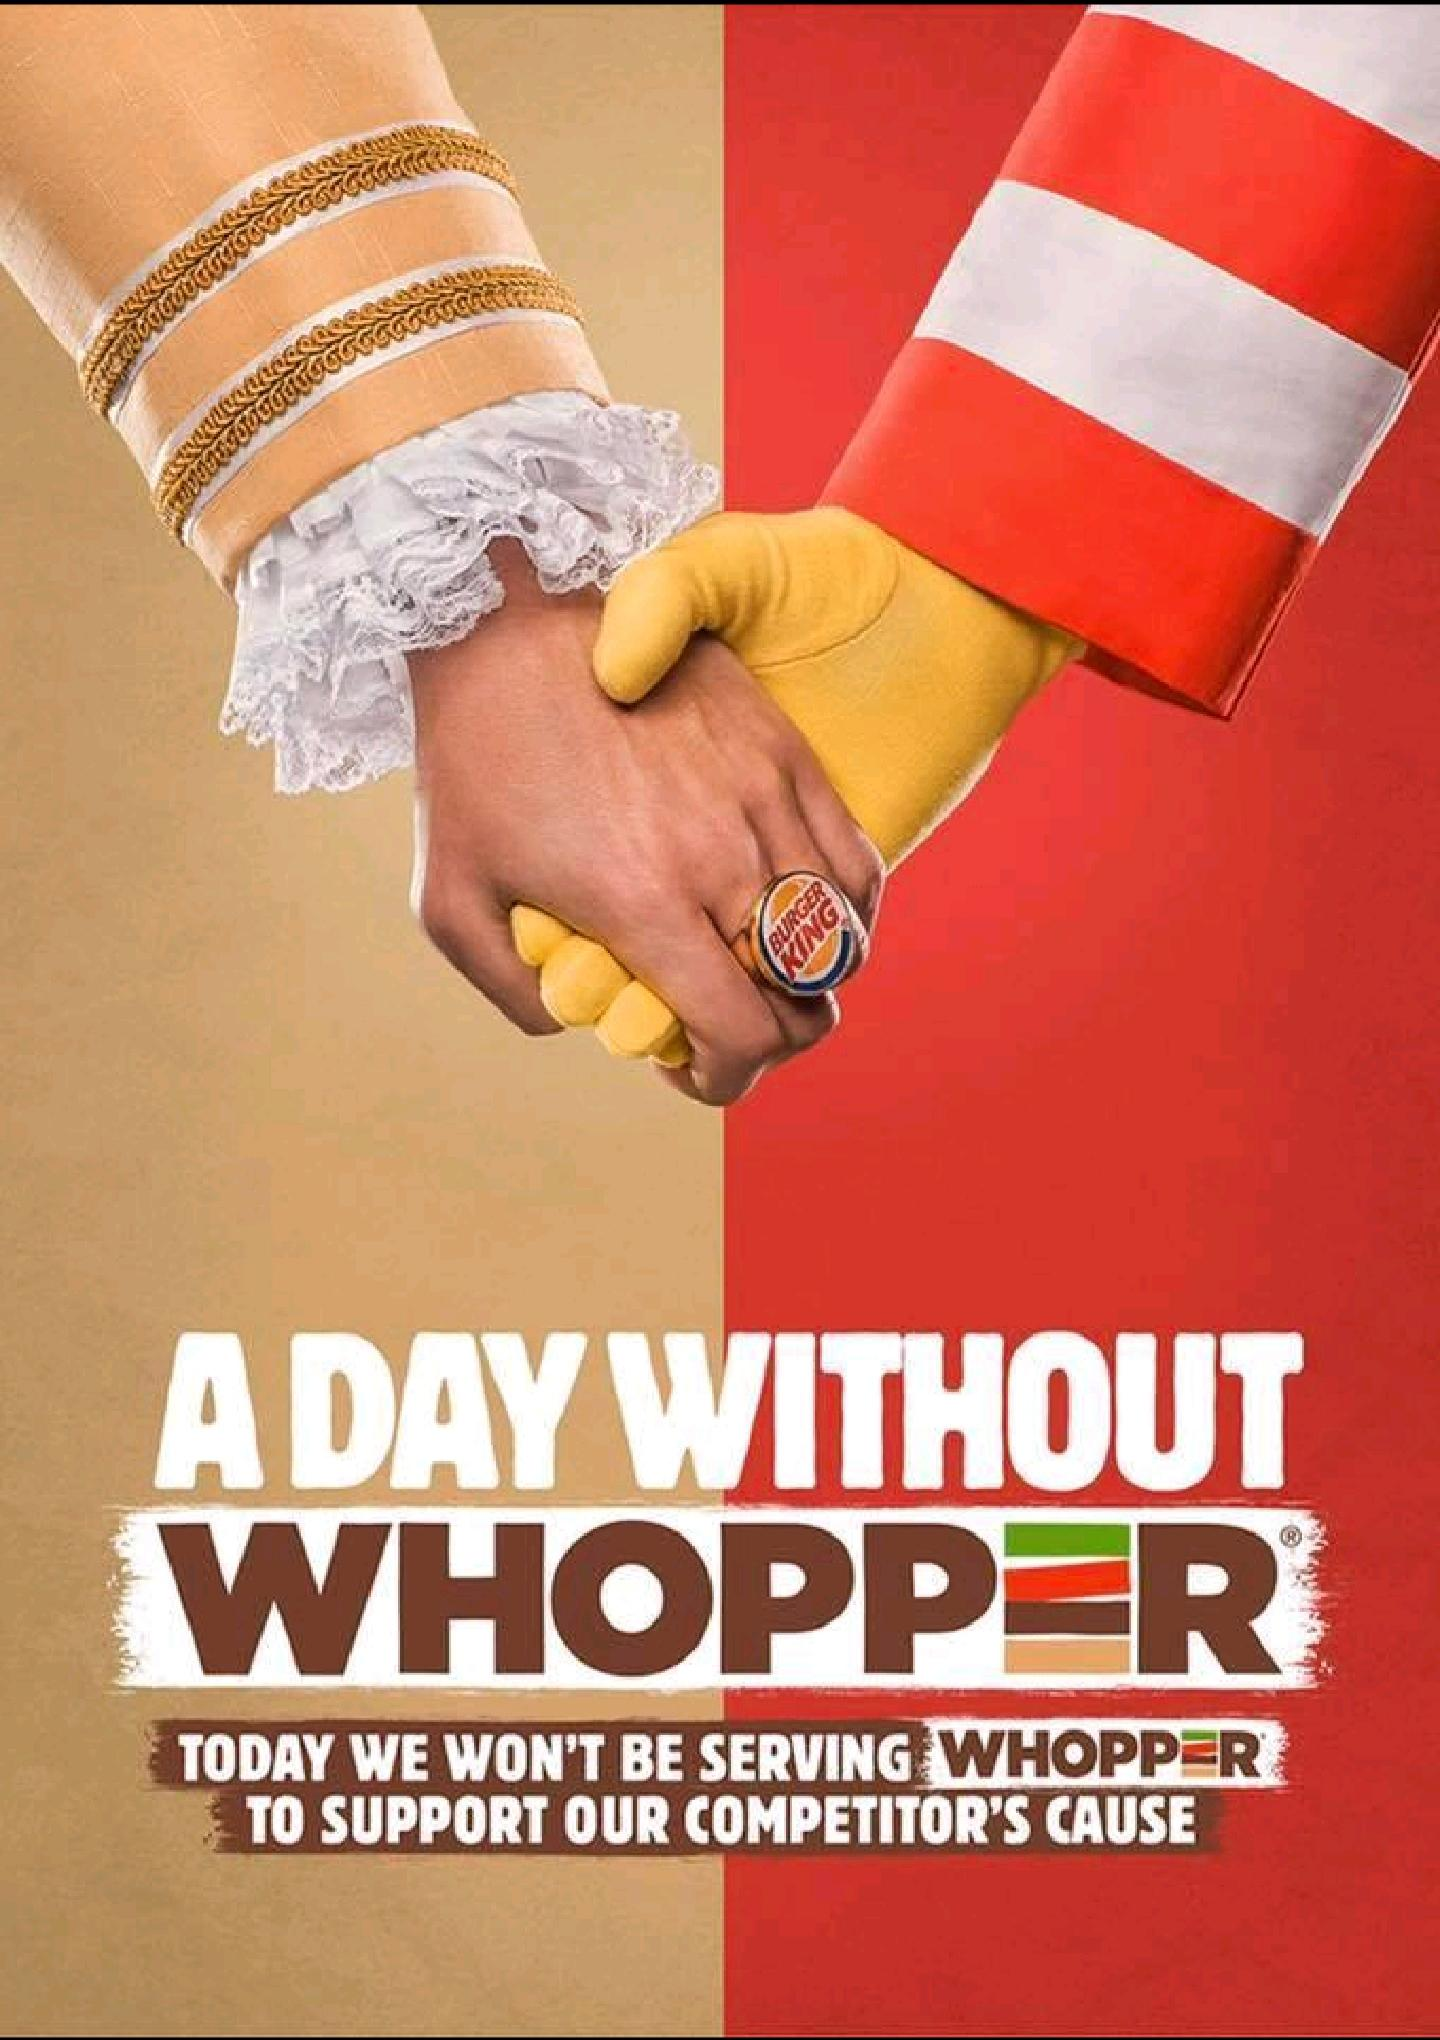 A Day Without Whopper Ad